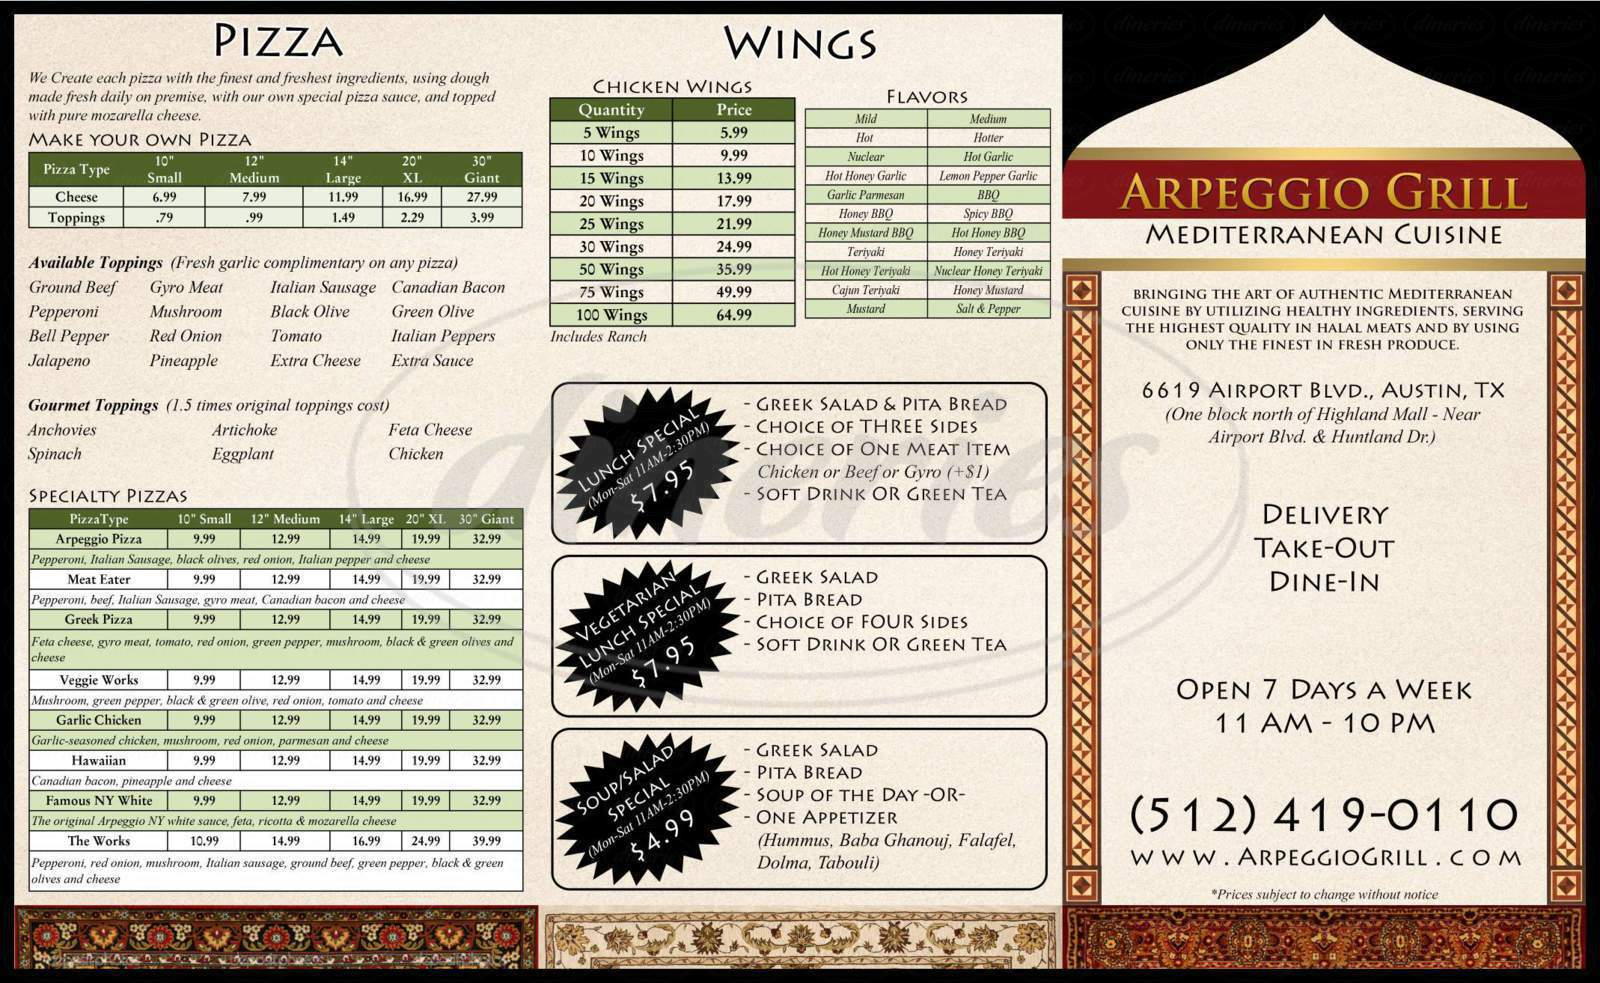 menu for Arpeggio Grill